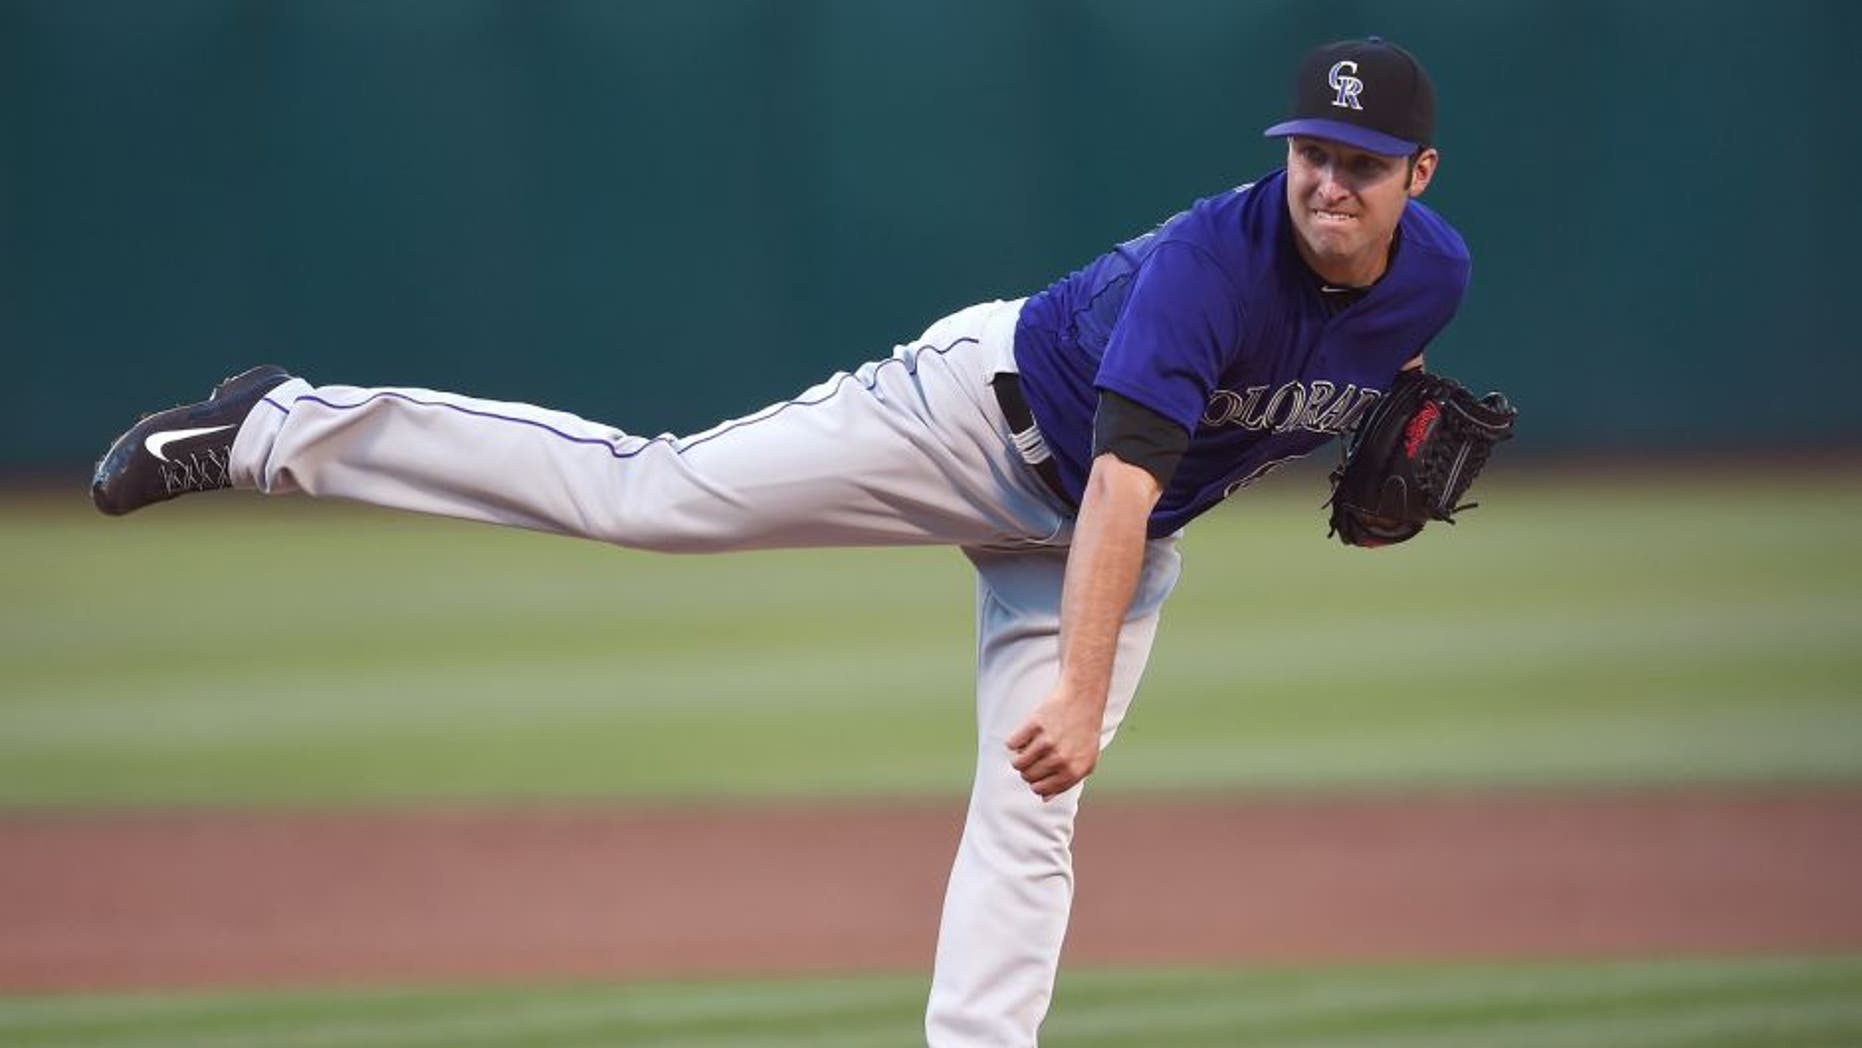 OAKLAND, CA - JUNE 29: David Hale #61 of the Colorado Rockies pitches against the Oakland Athletics in the bottom of the first inning at O.co Coliseum on June 29, 2015 in Oakland, California. (Photo by Thearon W. Henderson/Getty Images)